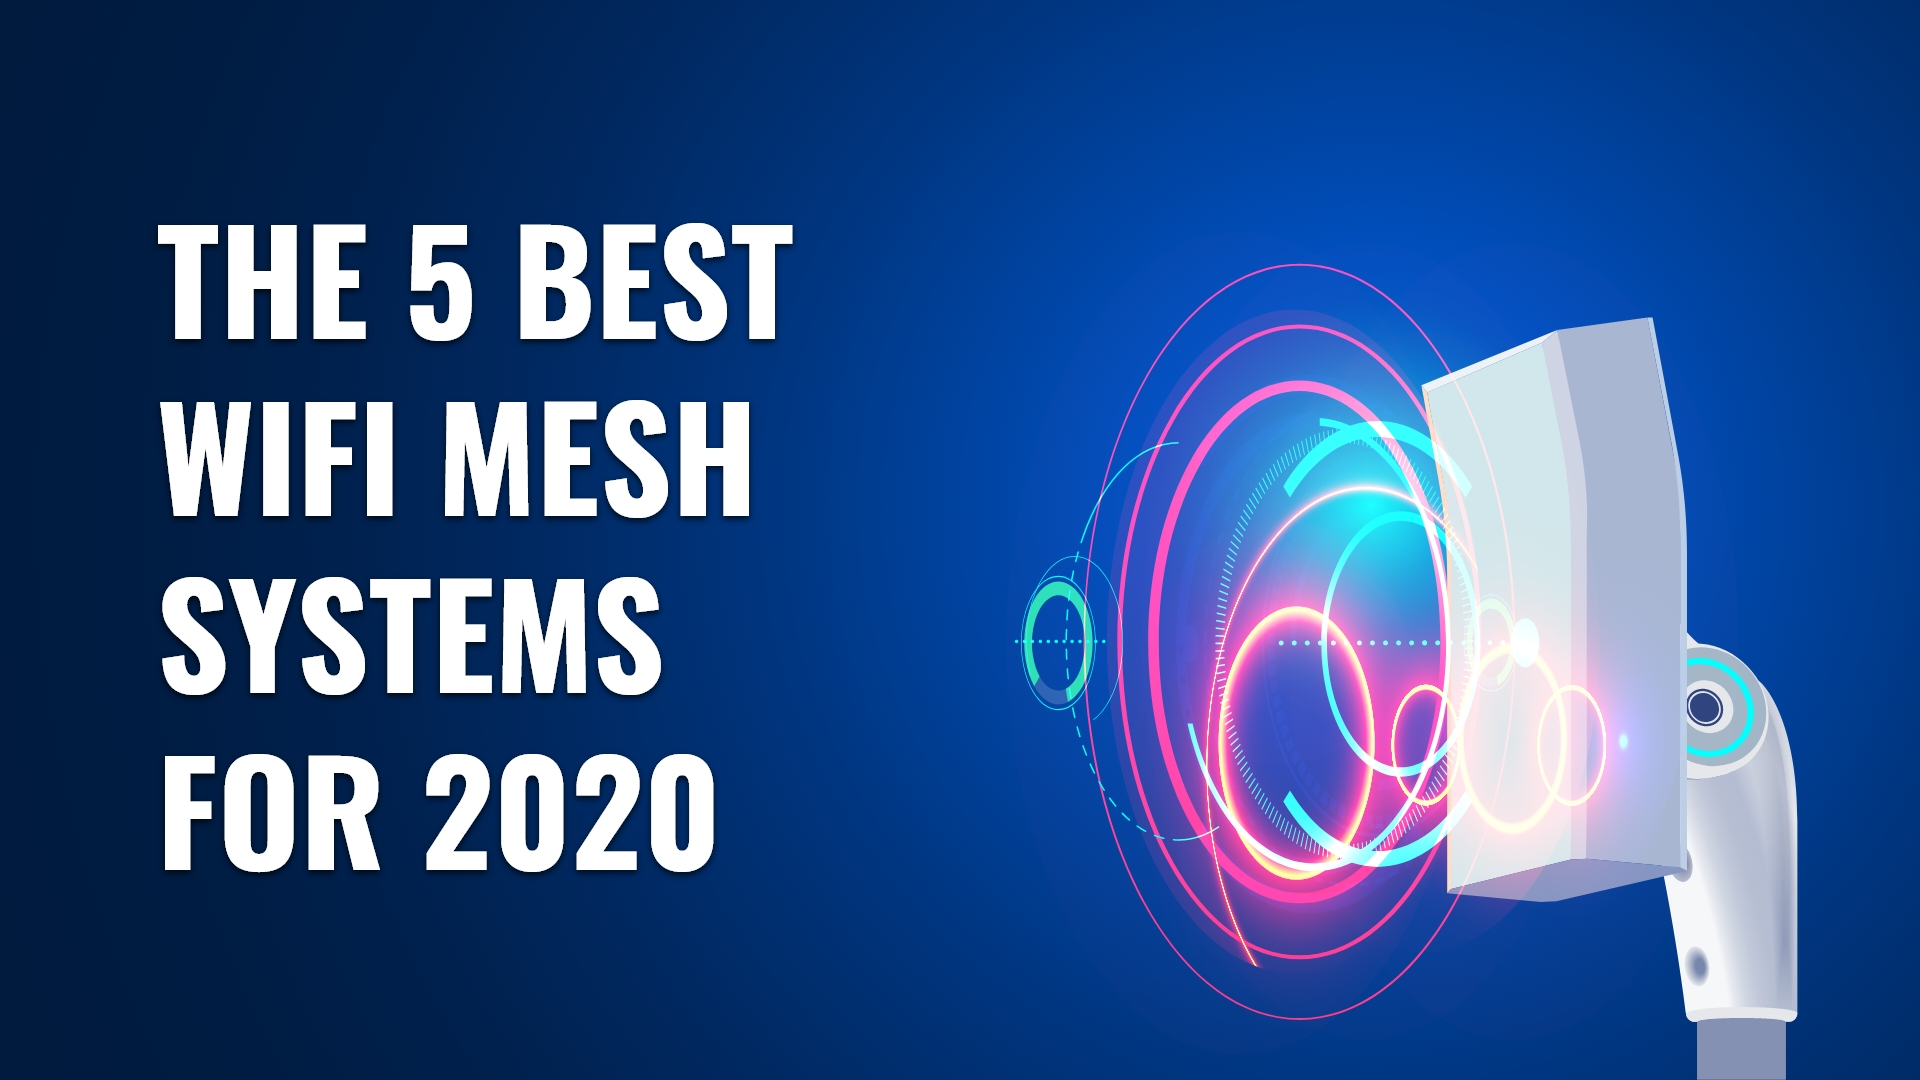 The 5 Best WiFi Mesh Systems for 2020